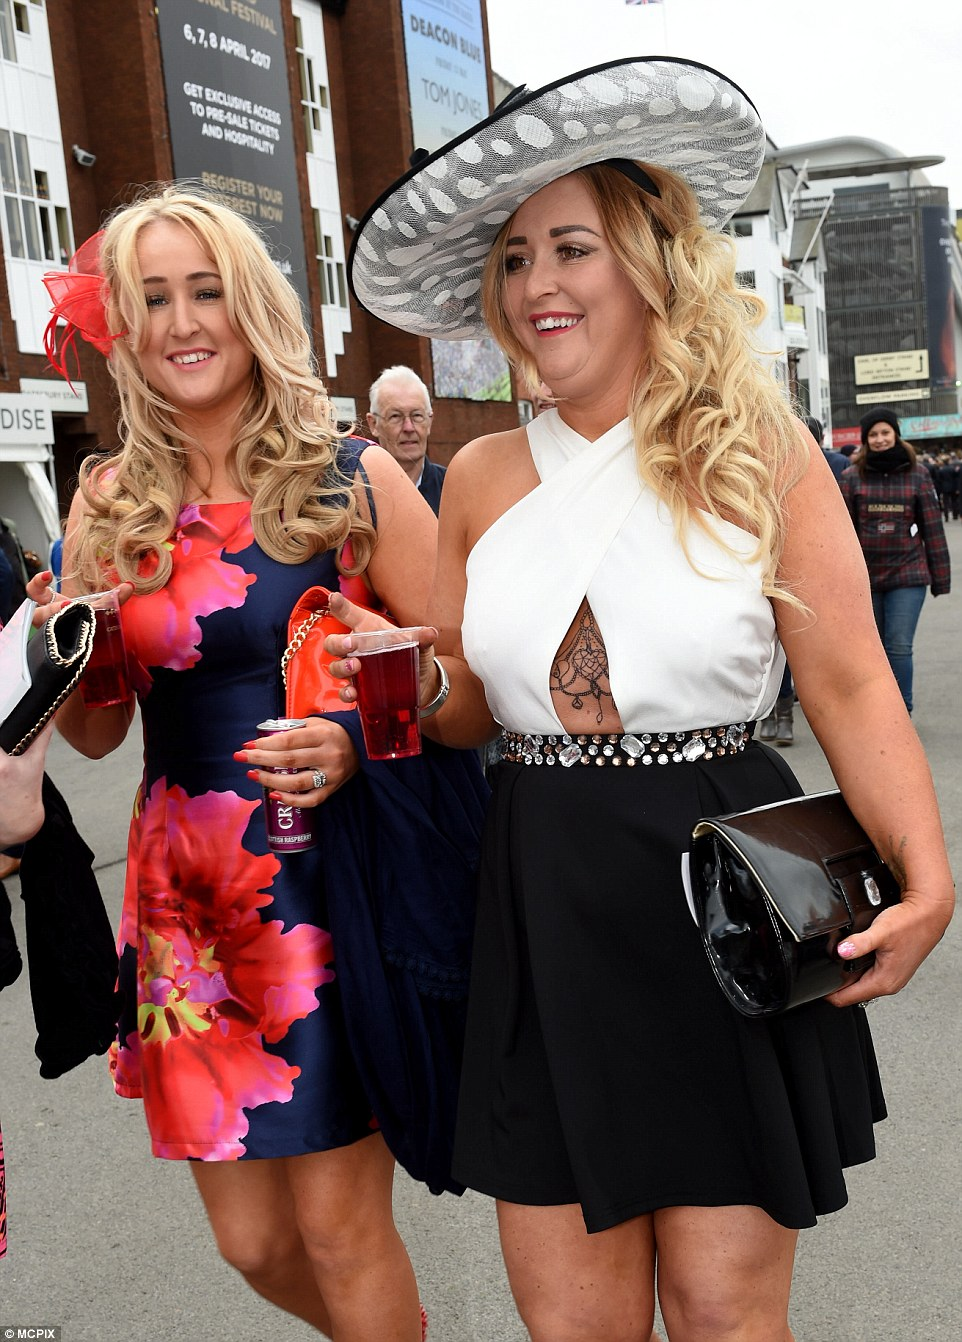 A woman showed off a hint of her tattoo in a monochrome dress with a cut out at the waist